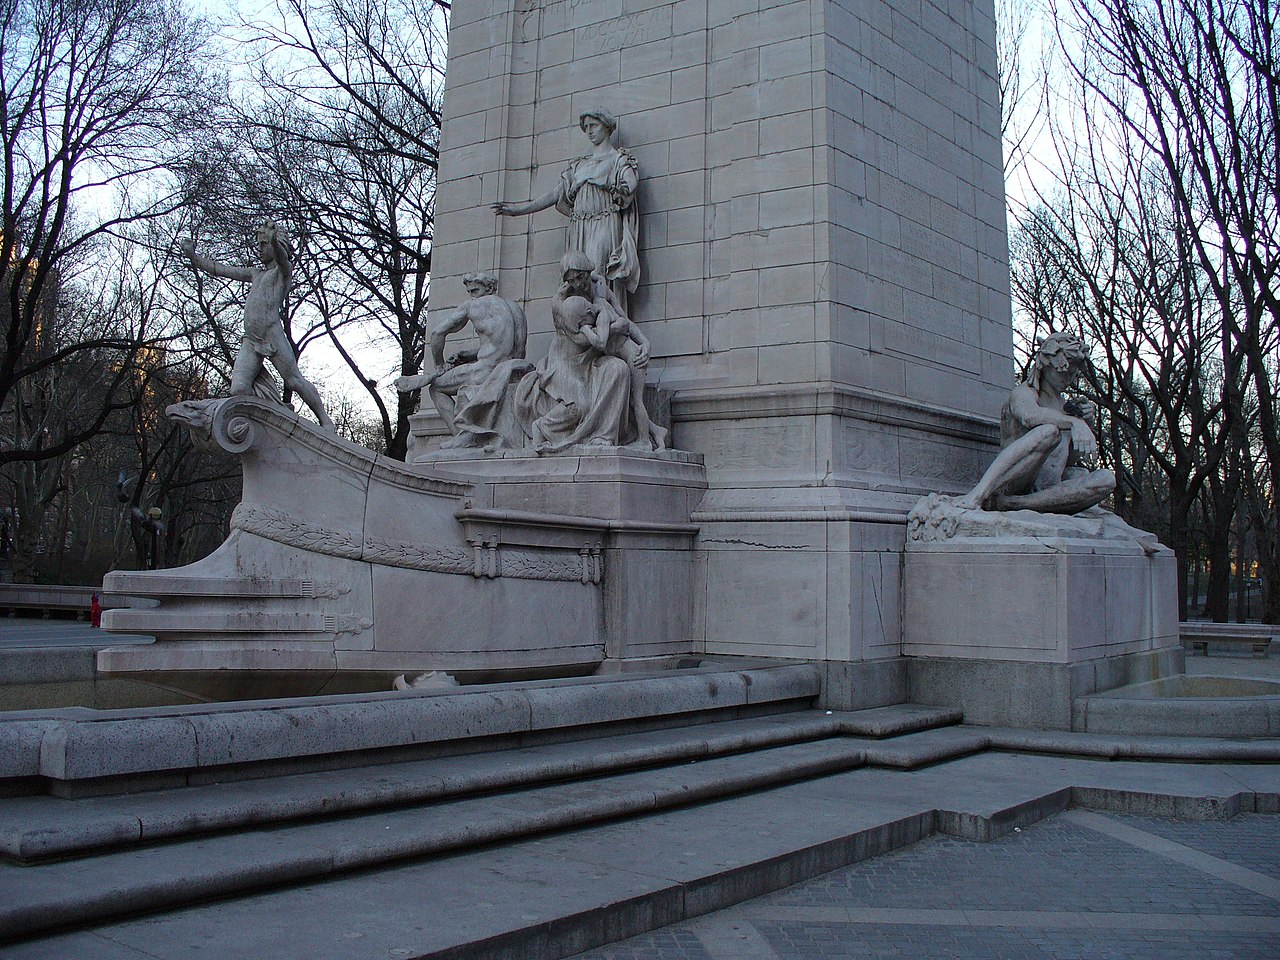 City Of South Gate >> File:USS Maine Monument (1913), New York City (P1000098 ...